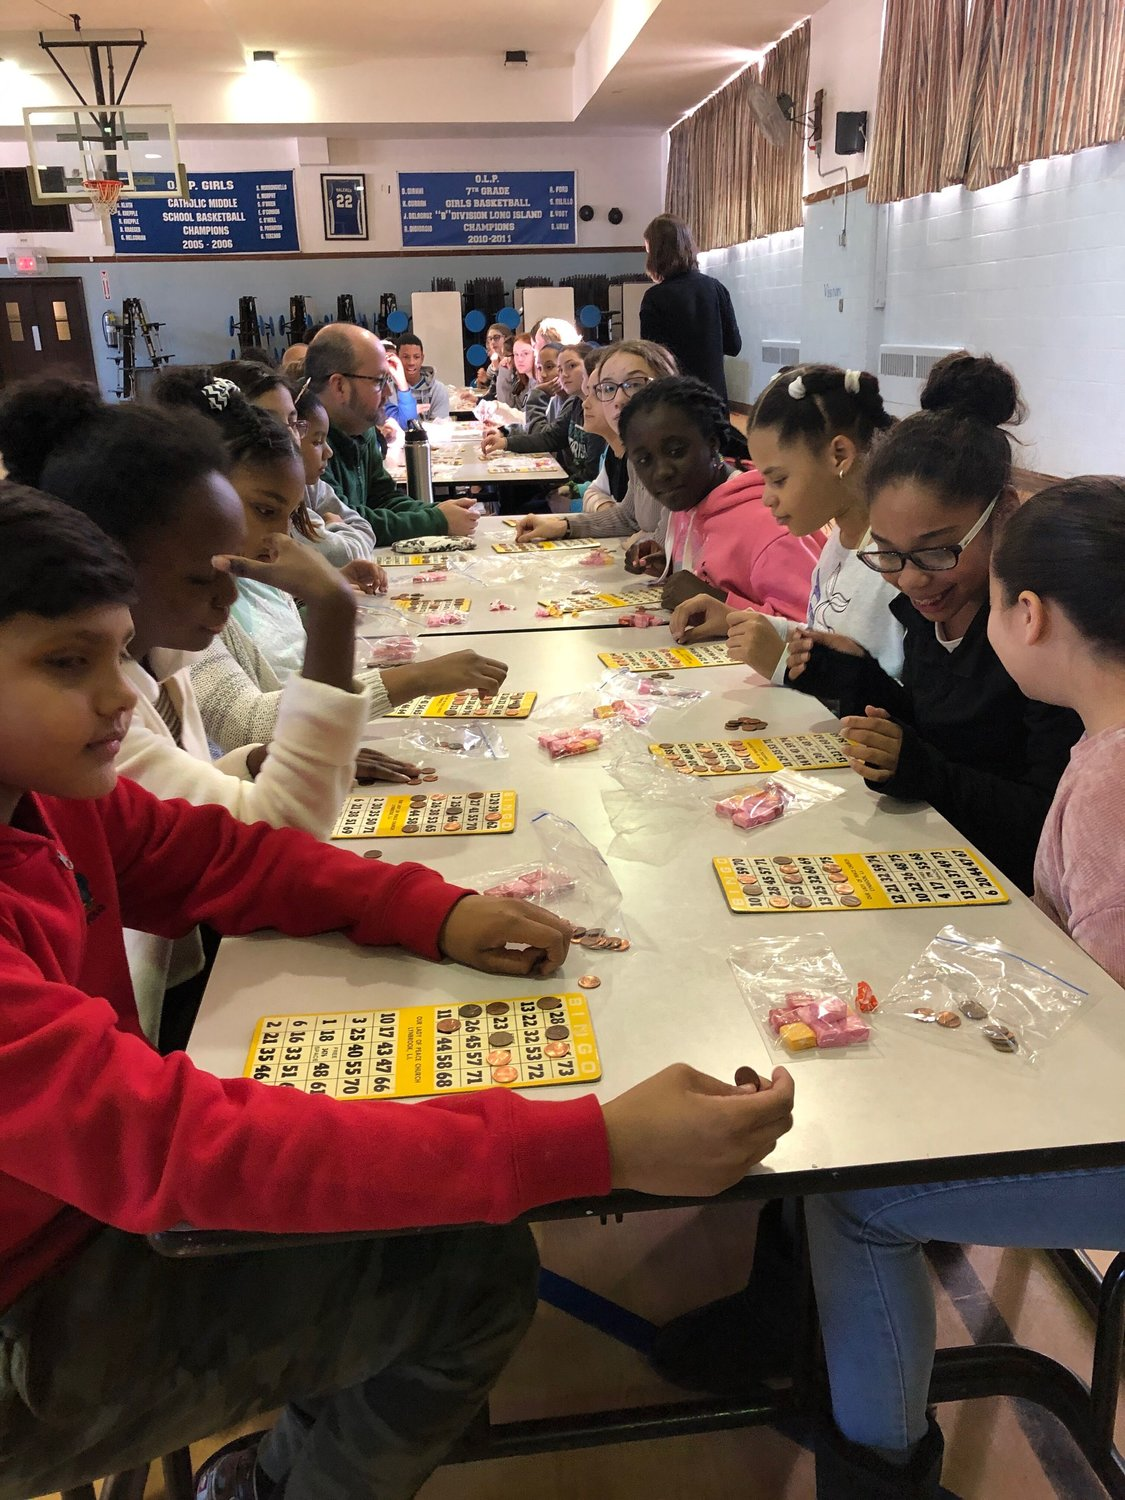 At Our Lady of Peace, students enjoyed many lessons and games throughout the week, including bingo.